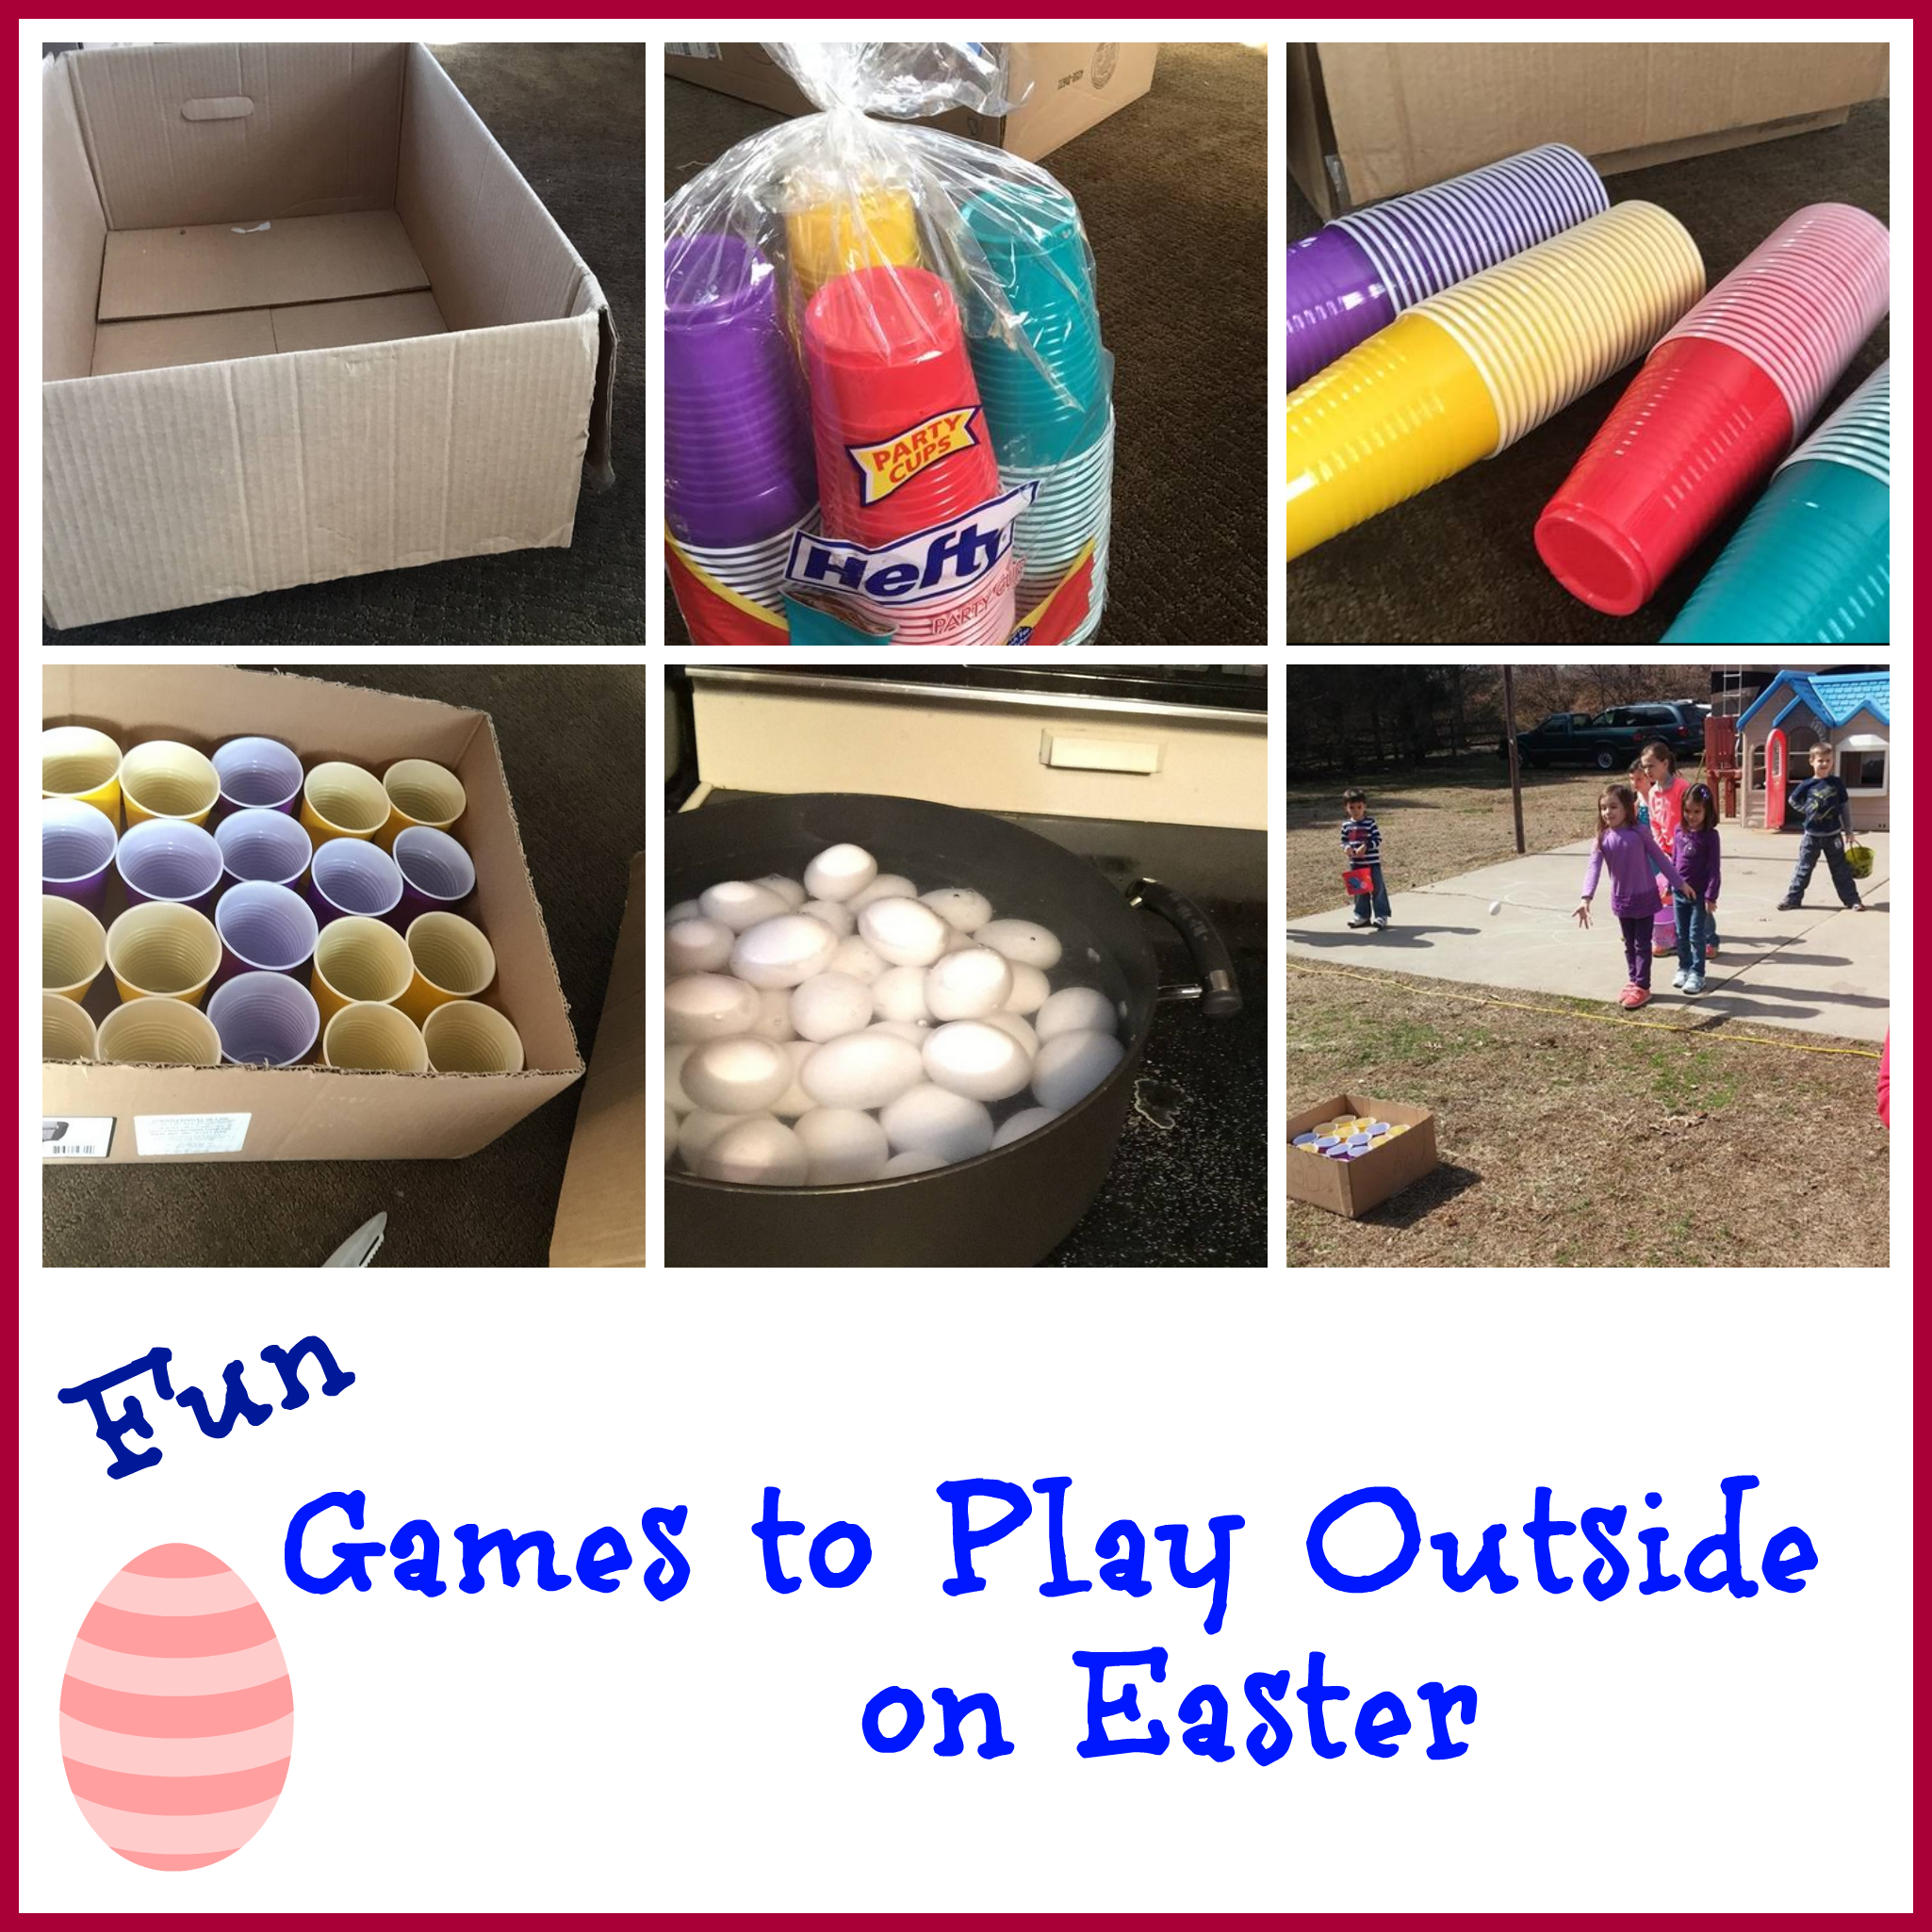 fun games to play outside on easter that are cheap, easy and who